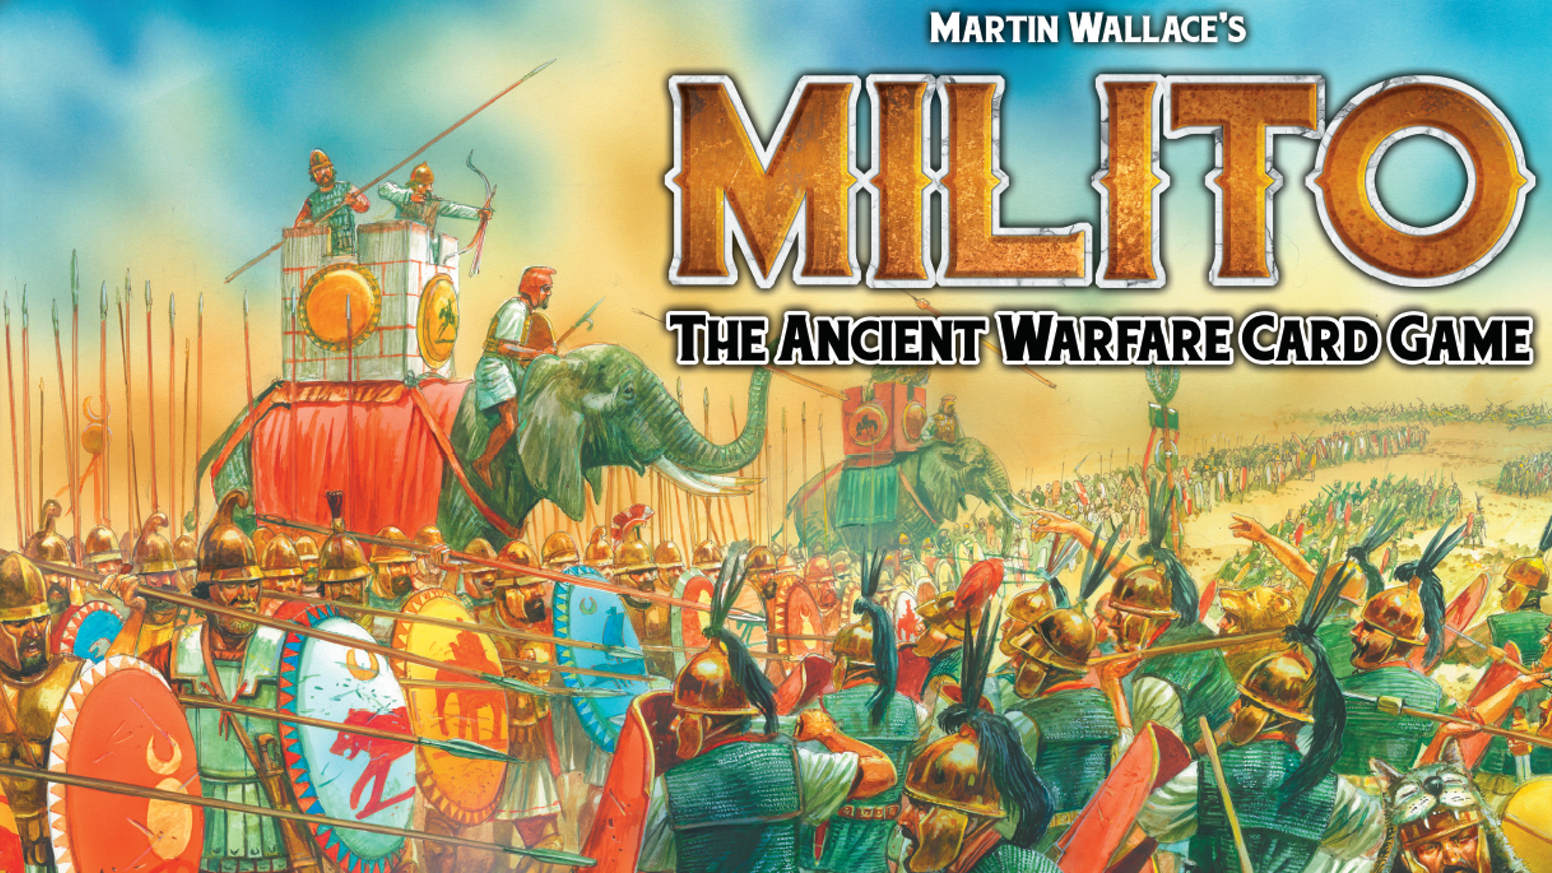 Milito is a card-based, diceless wargame by Martin Wallace, putting you at the head of an Ancient army.